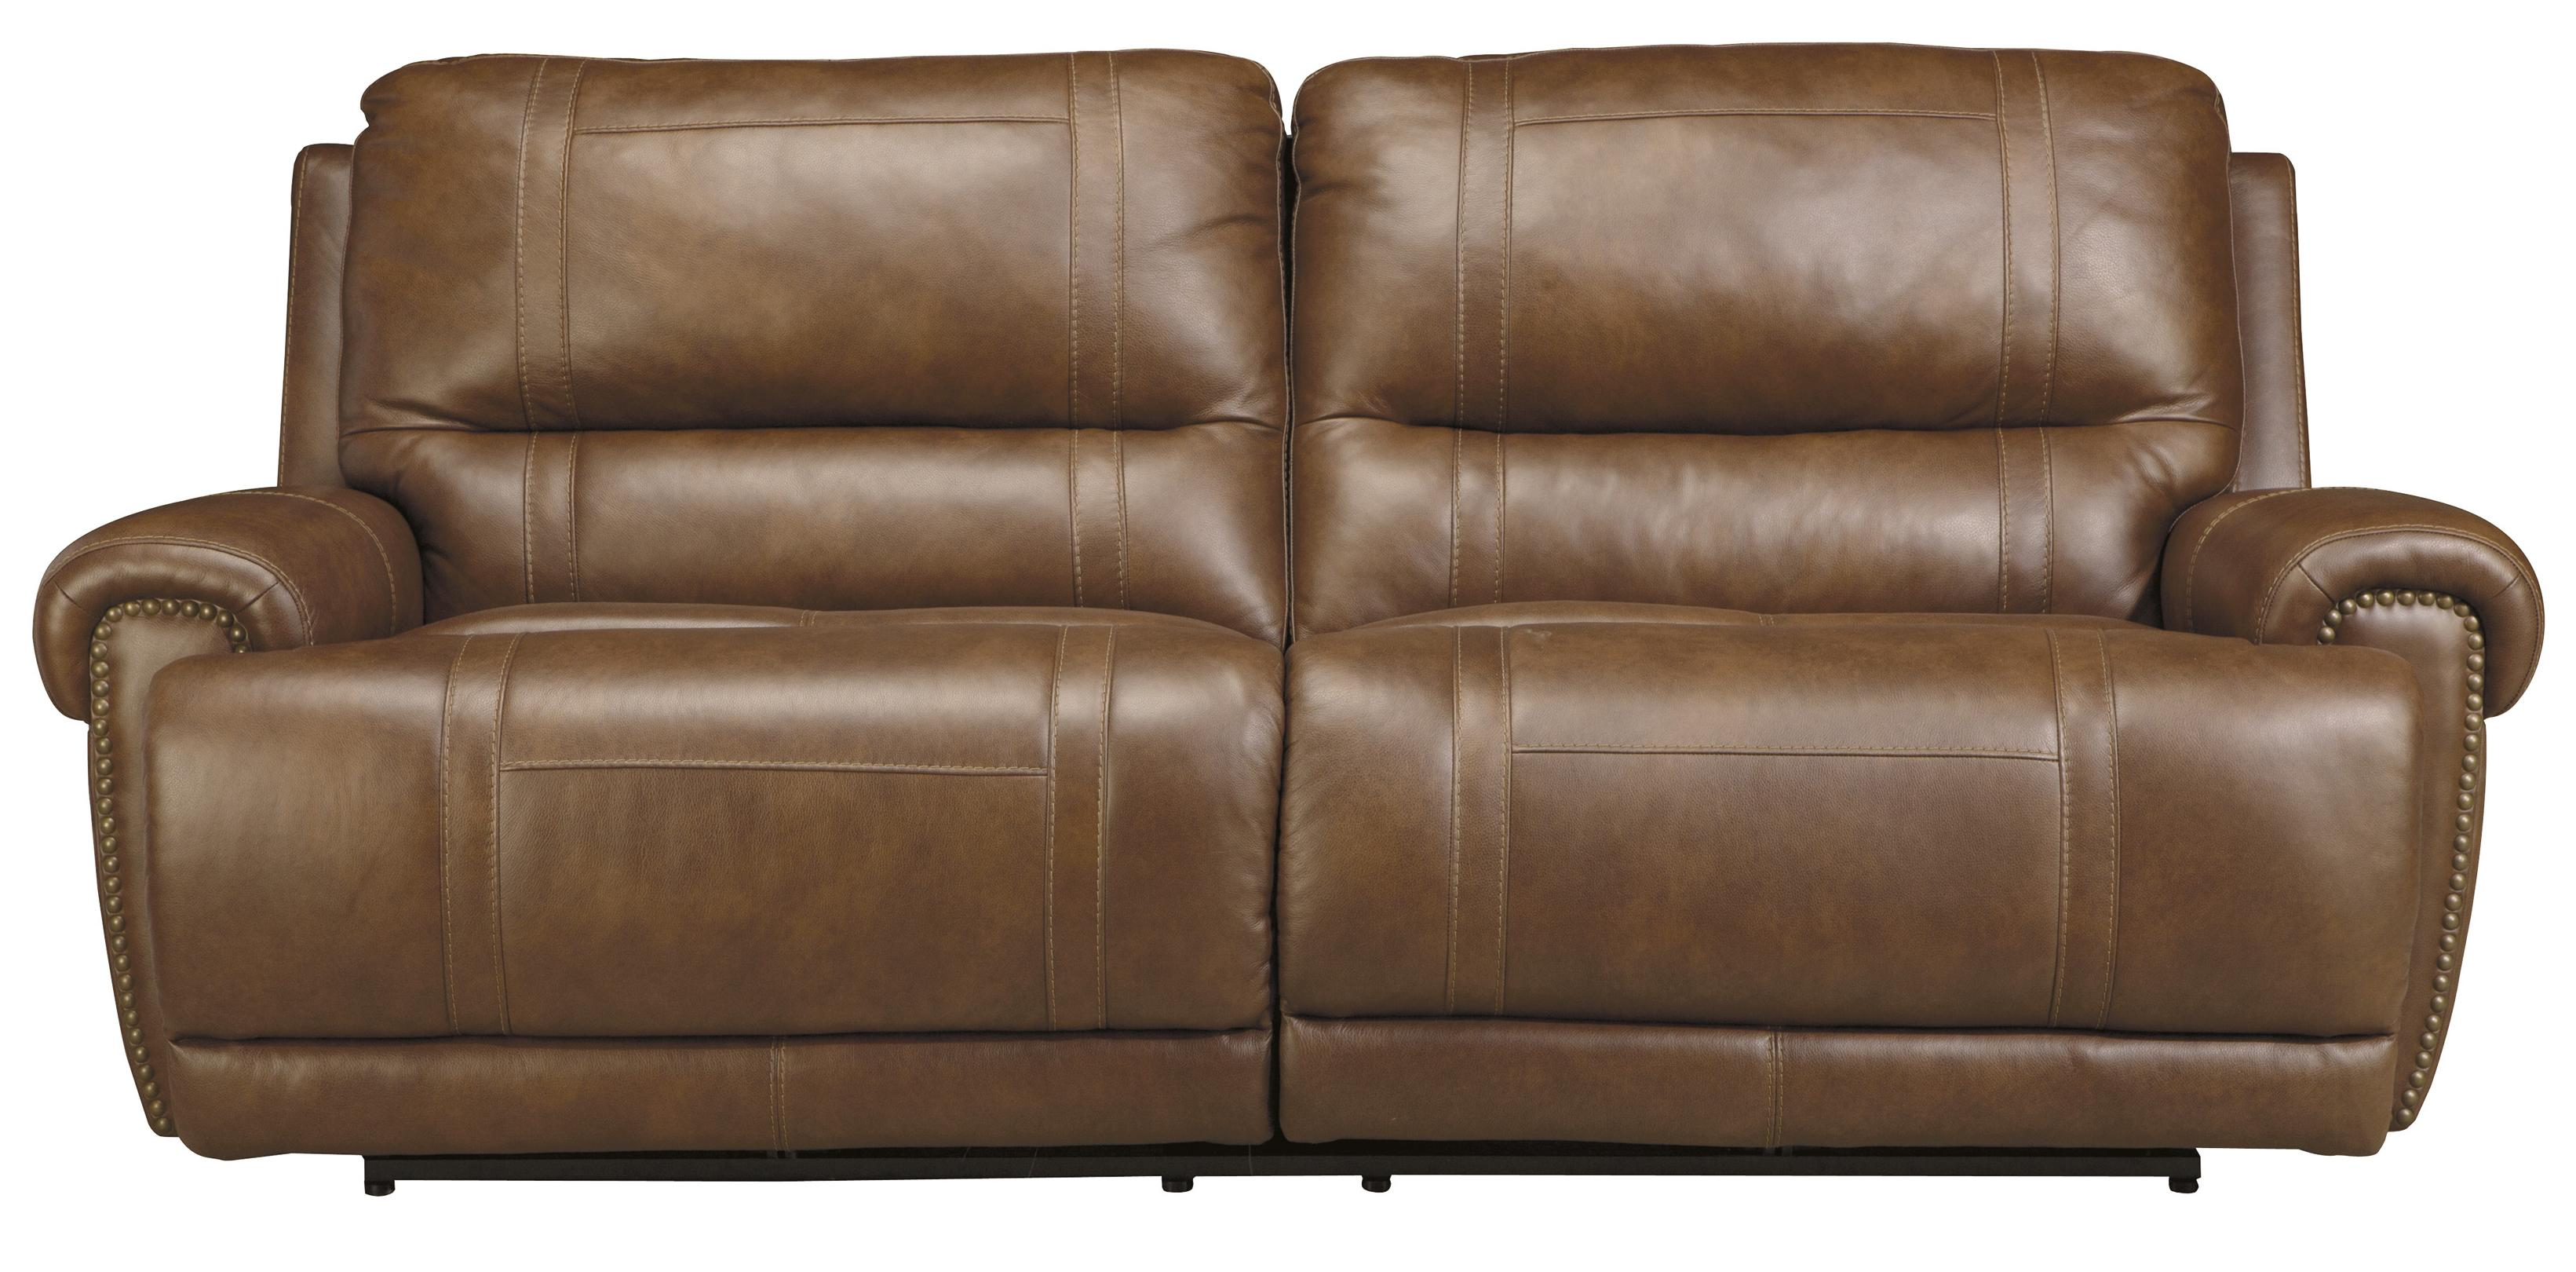 4 Seat Leather Reclining Sofa – TheSofa